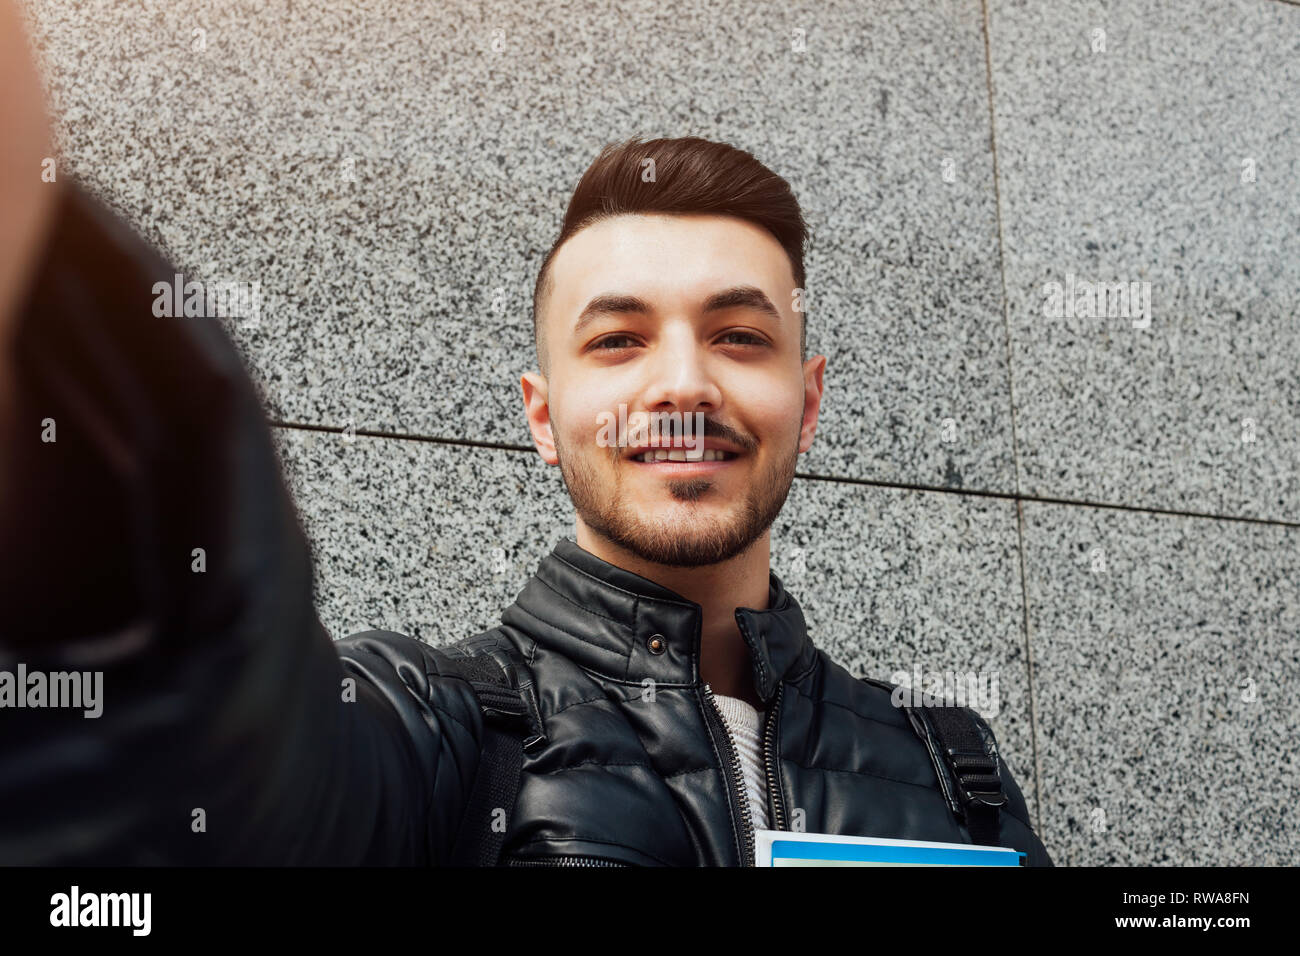 Arabian student takes selfie on smartphone outside. Happy guy looks at phone by the wall after classes. Man holds copybooks. Education - Stock Image